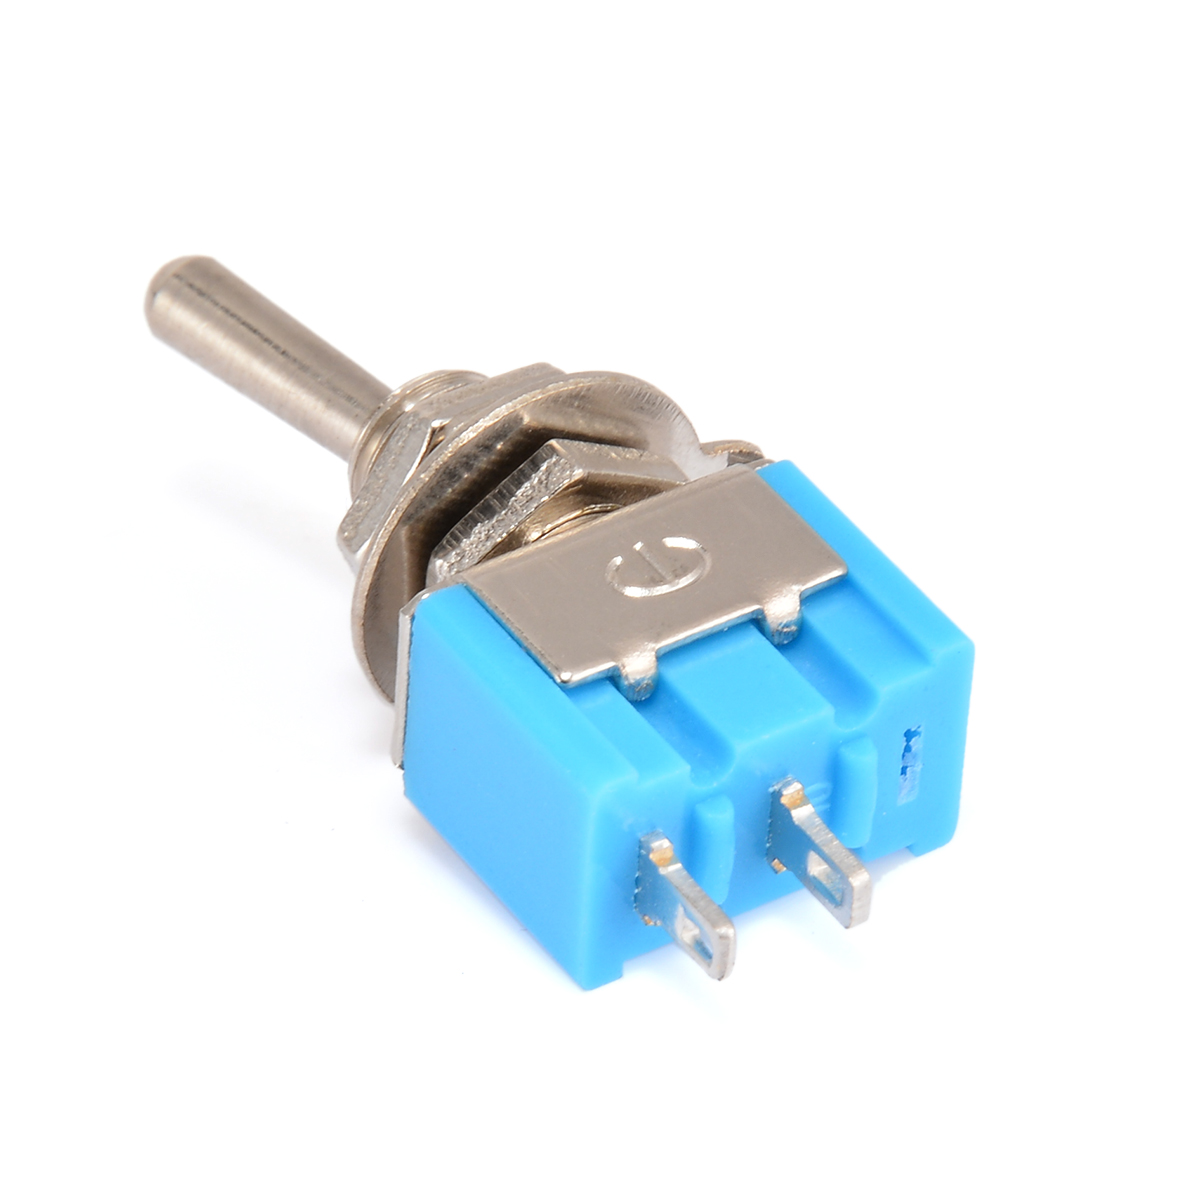 10pcs MTS-101 2 Pin SPST Switch ON-OFF 2 Positions <font><b>6A</b></font> <font><b>250V</b></font> AC Durable Mini Electrical Toggle Switches 33*13*8mm Mayitr image